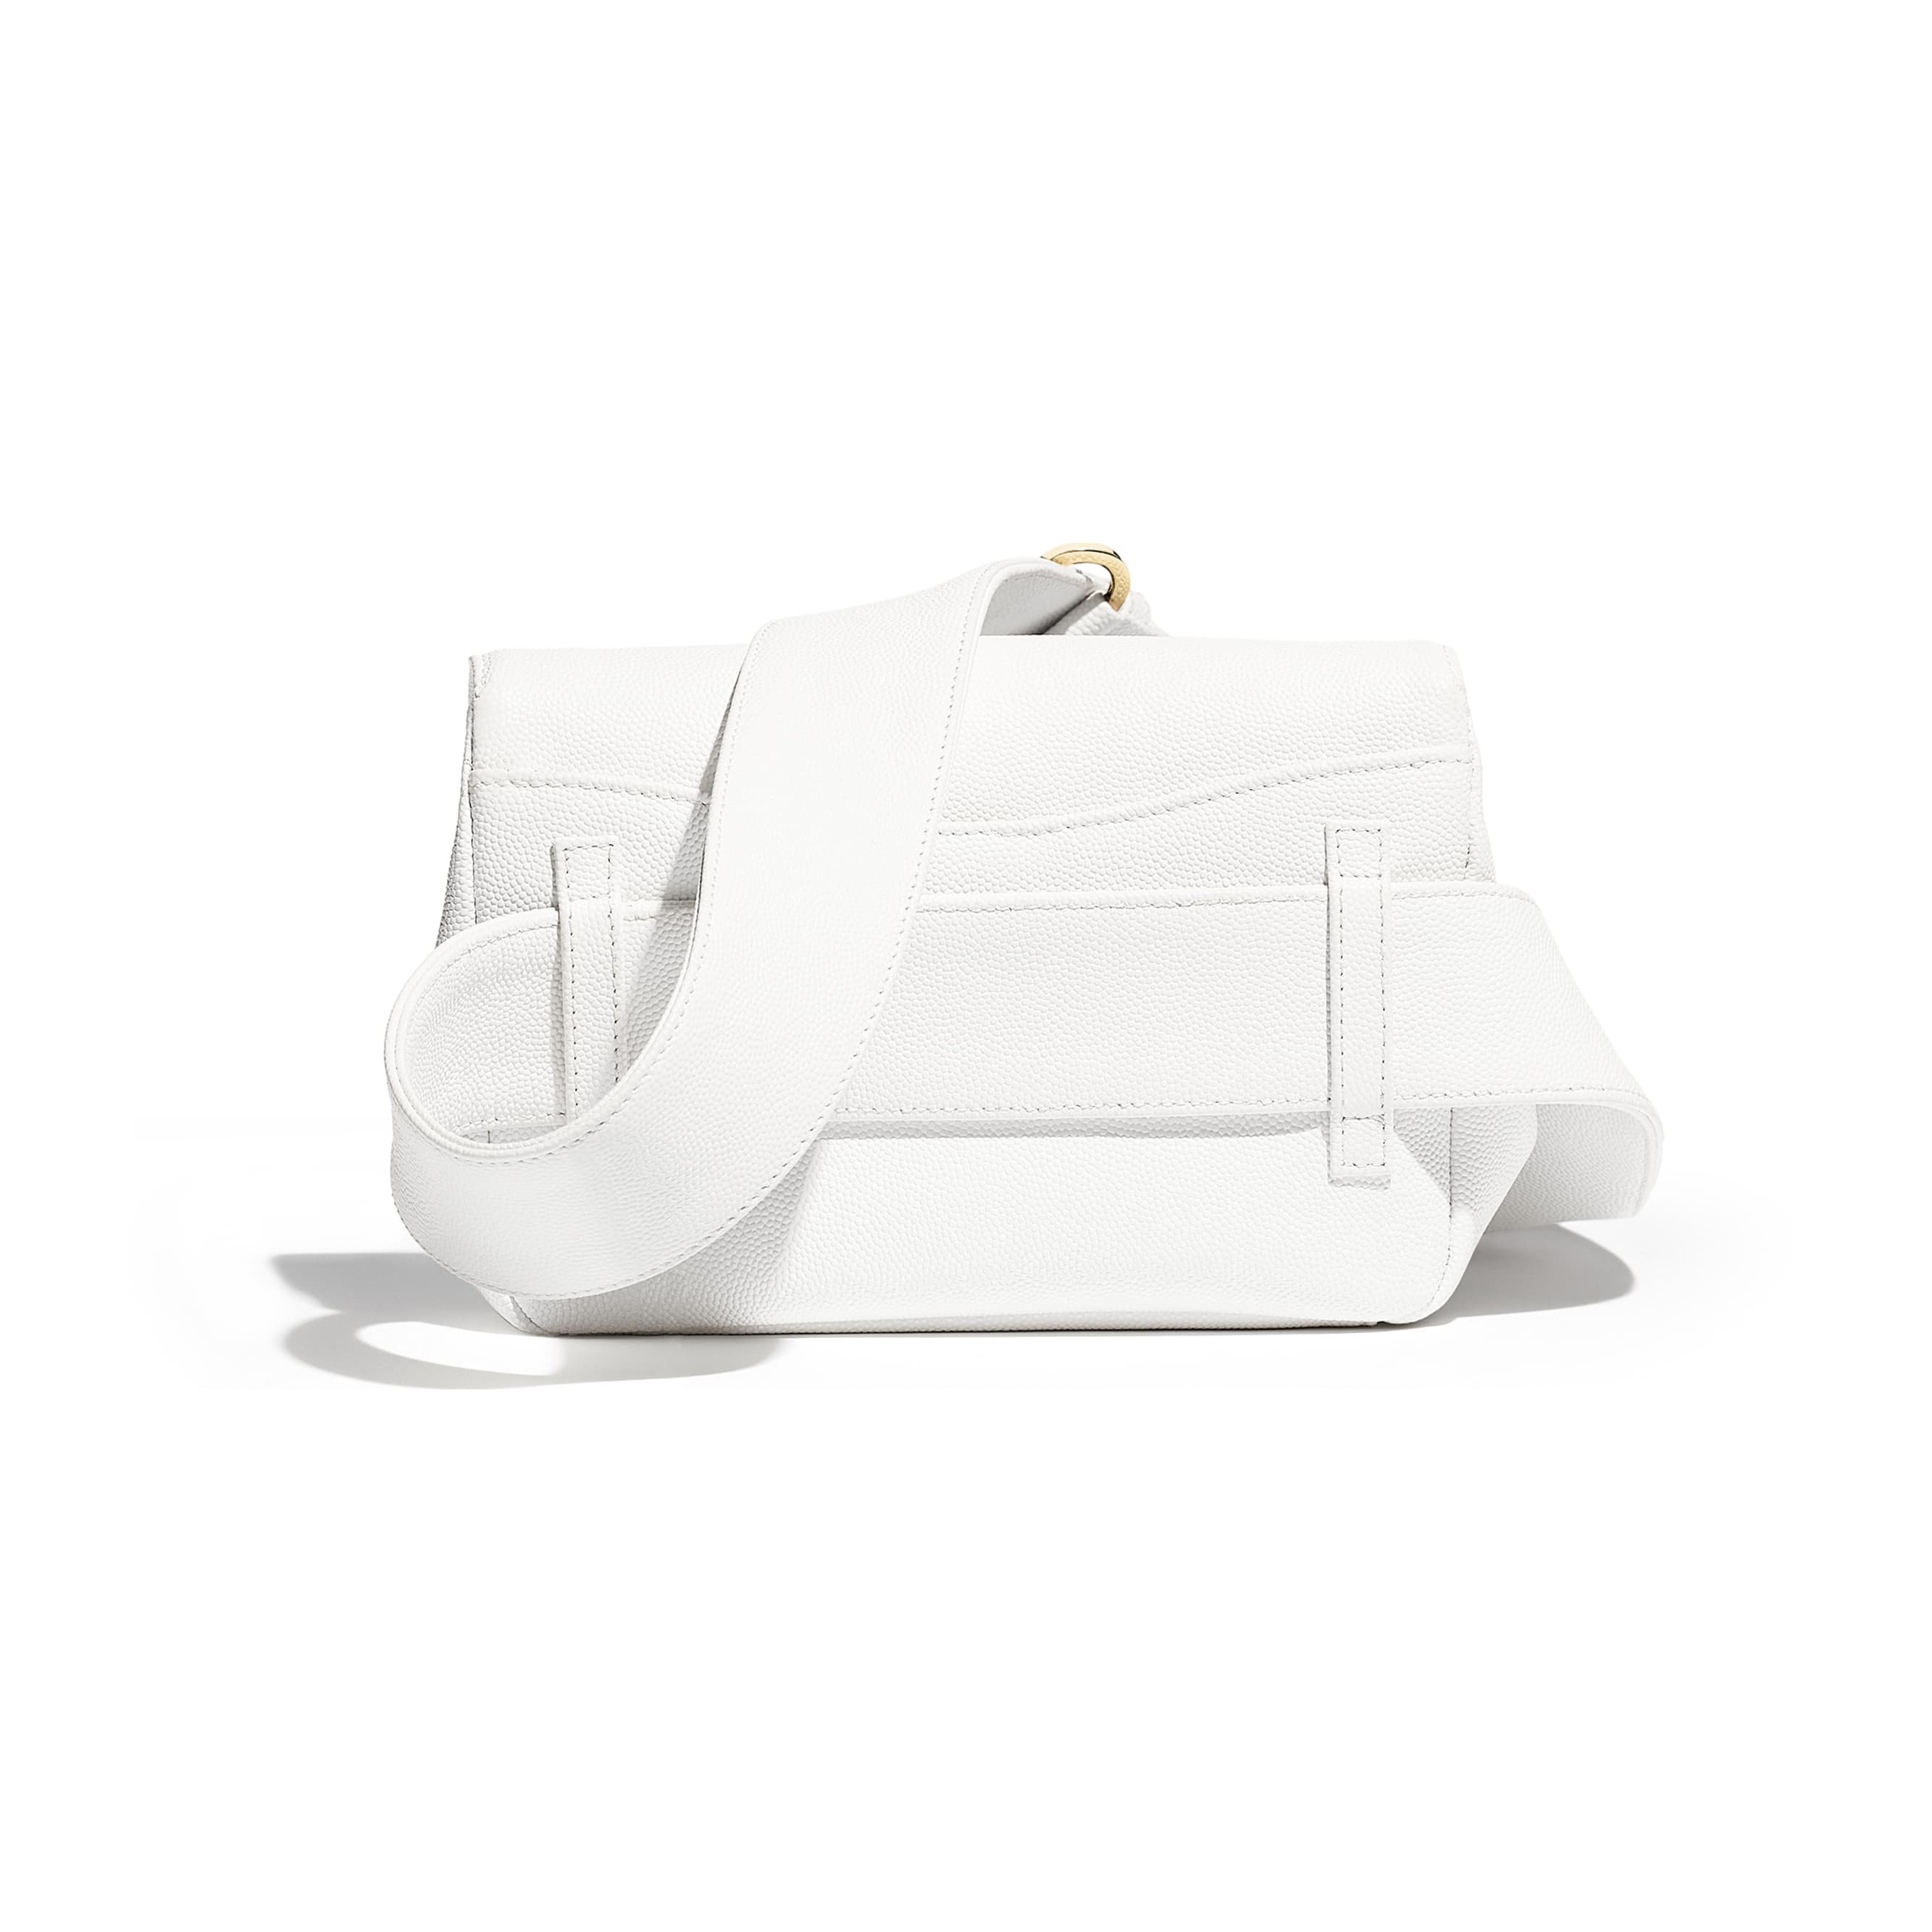 Waist Bag - White - Embroidered Grained Calfskin & Gold-Tone Metal - Alternative view - see standard sized version